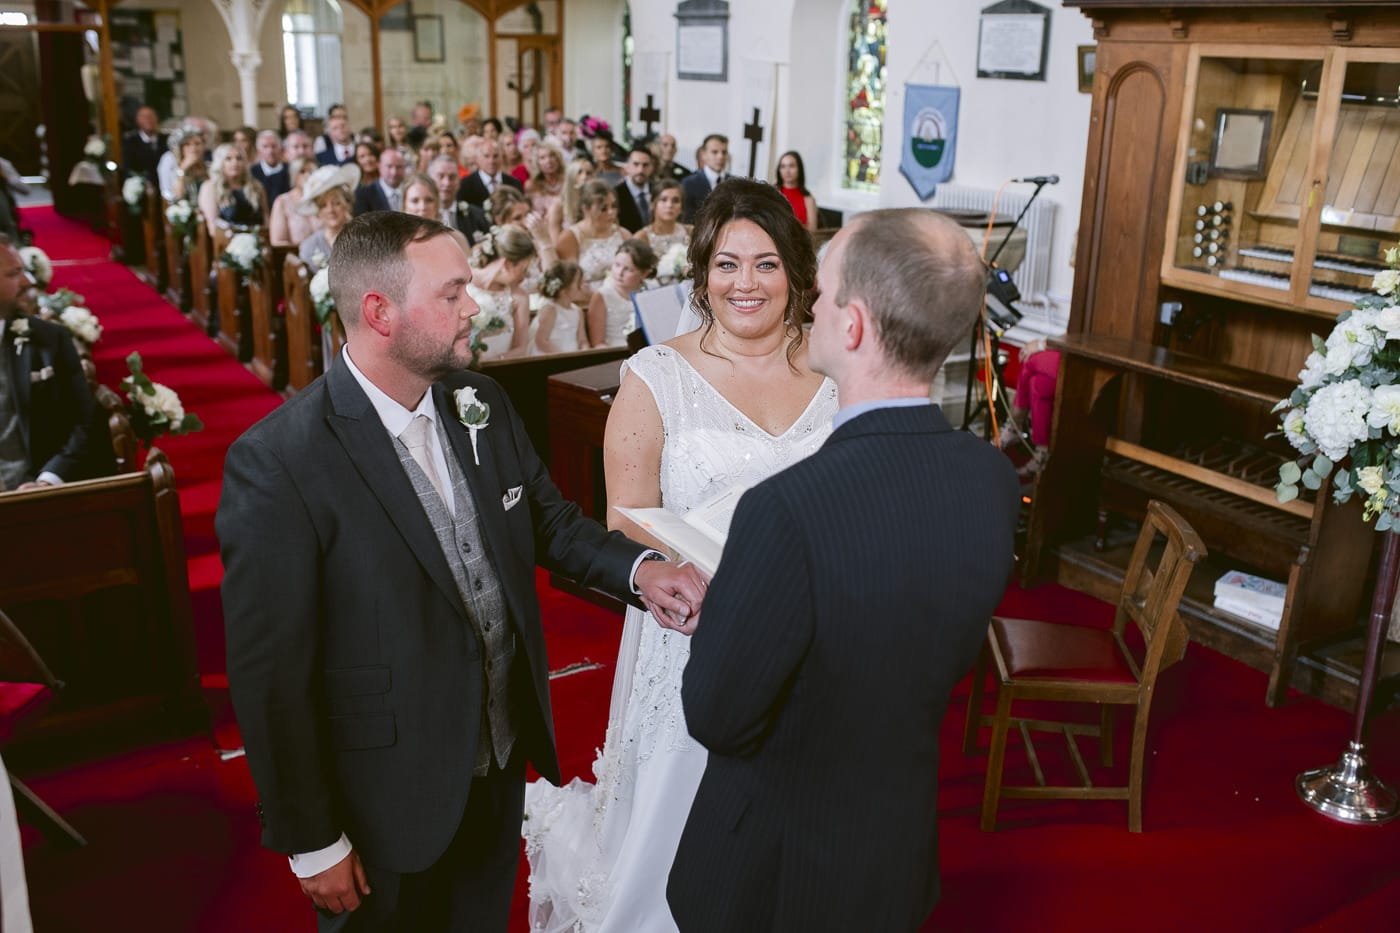 Wedding Vowels with Minister and Bride and Groom in Irton Hall Cumbria